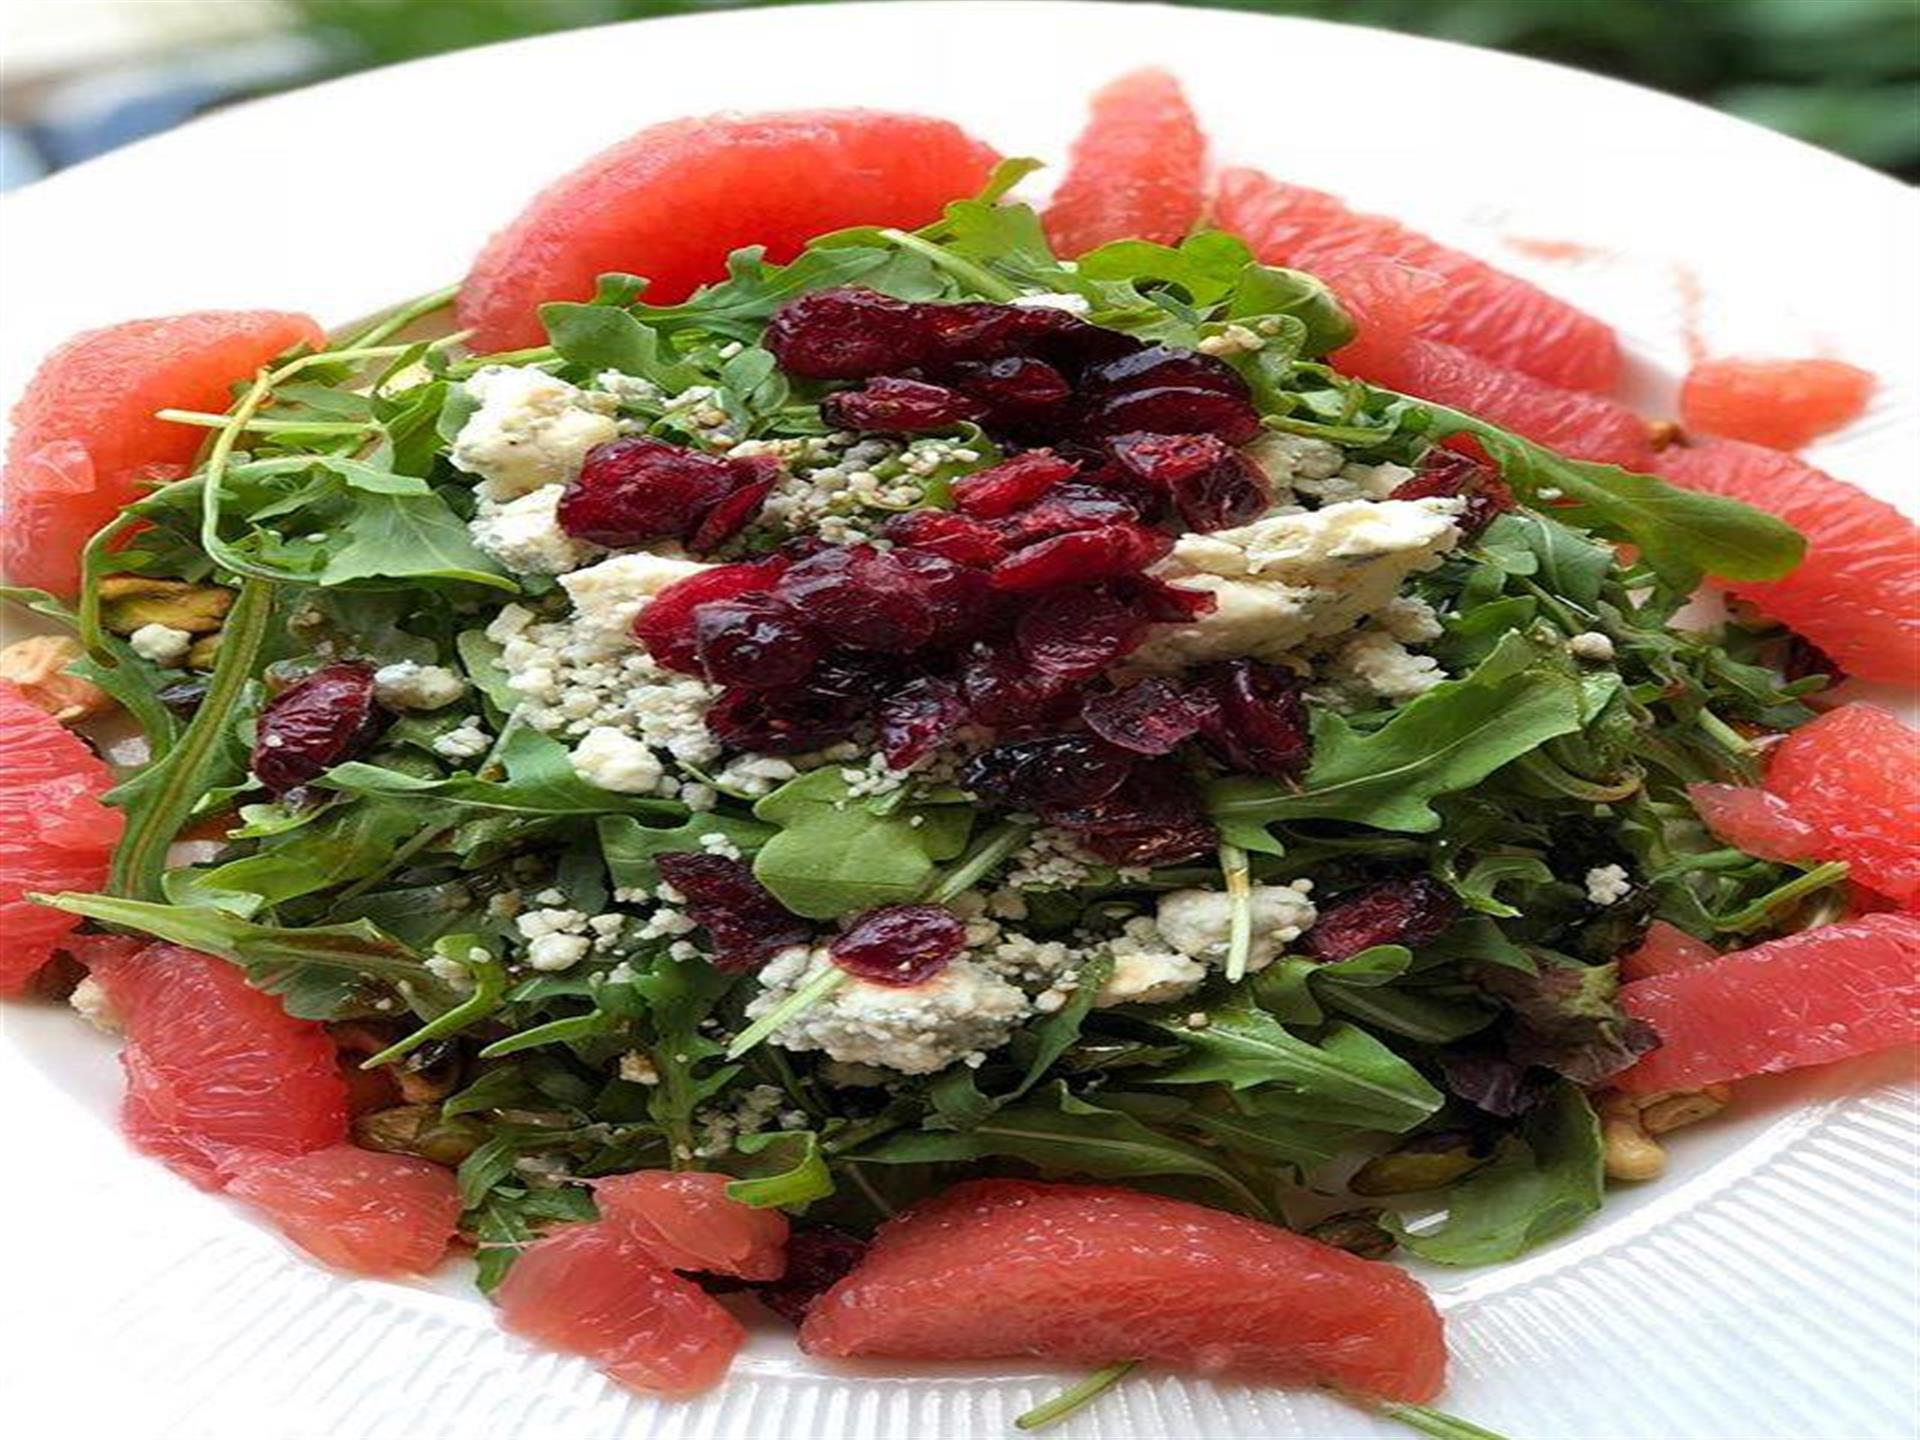 arugula salad with beets